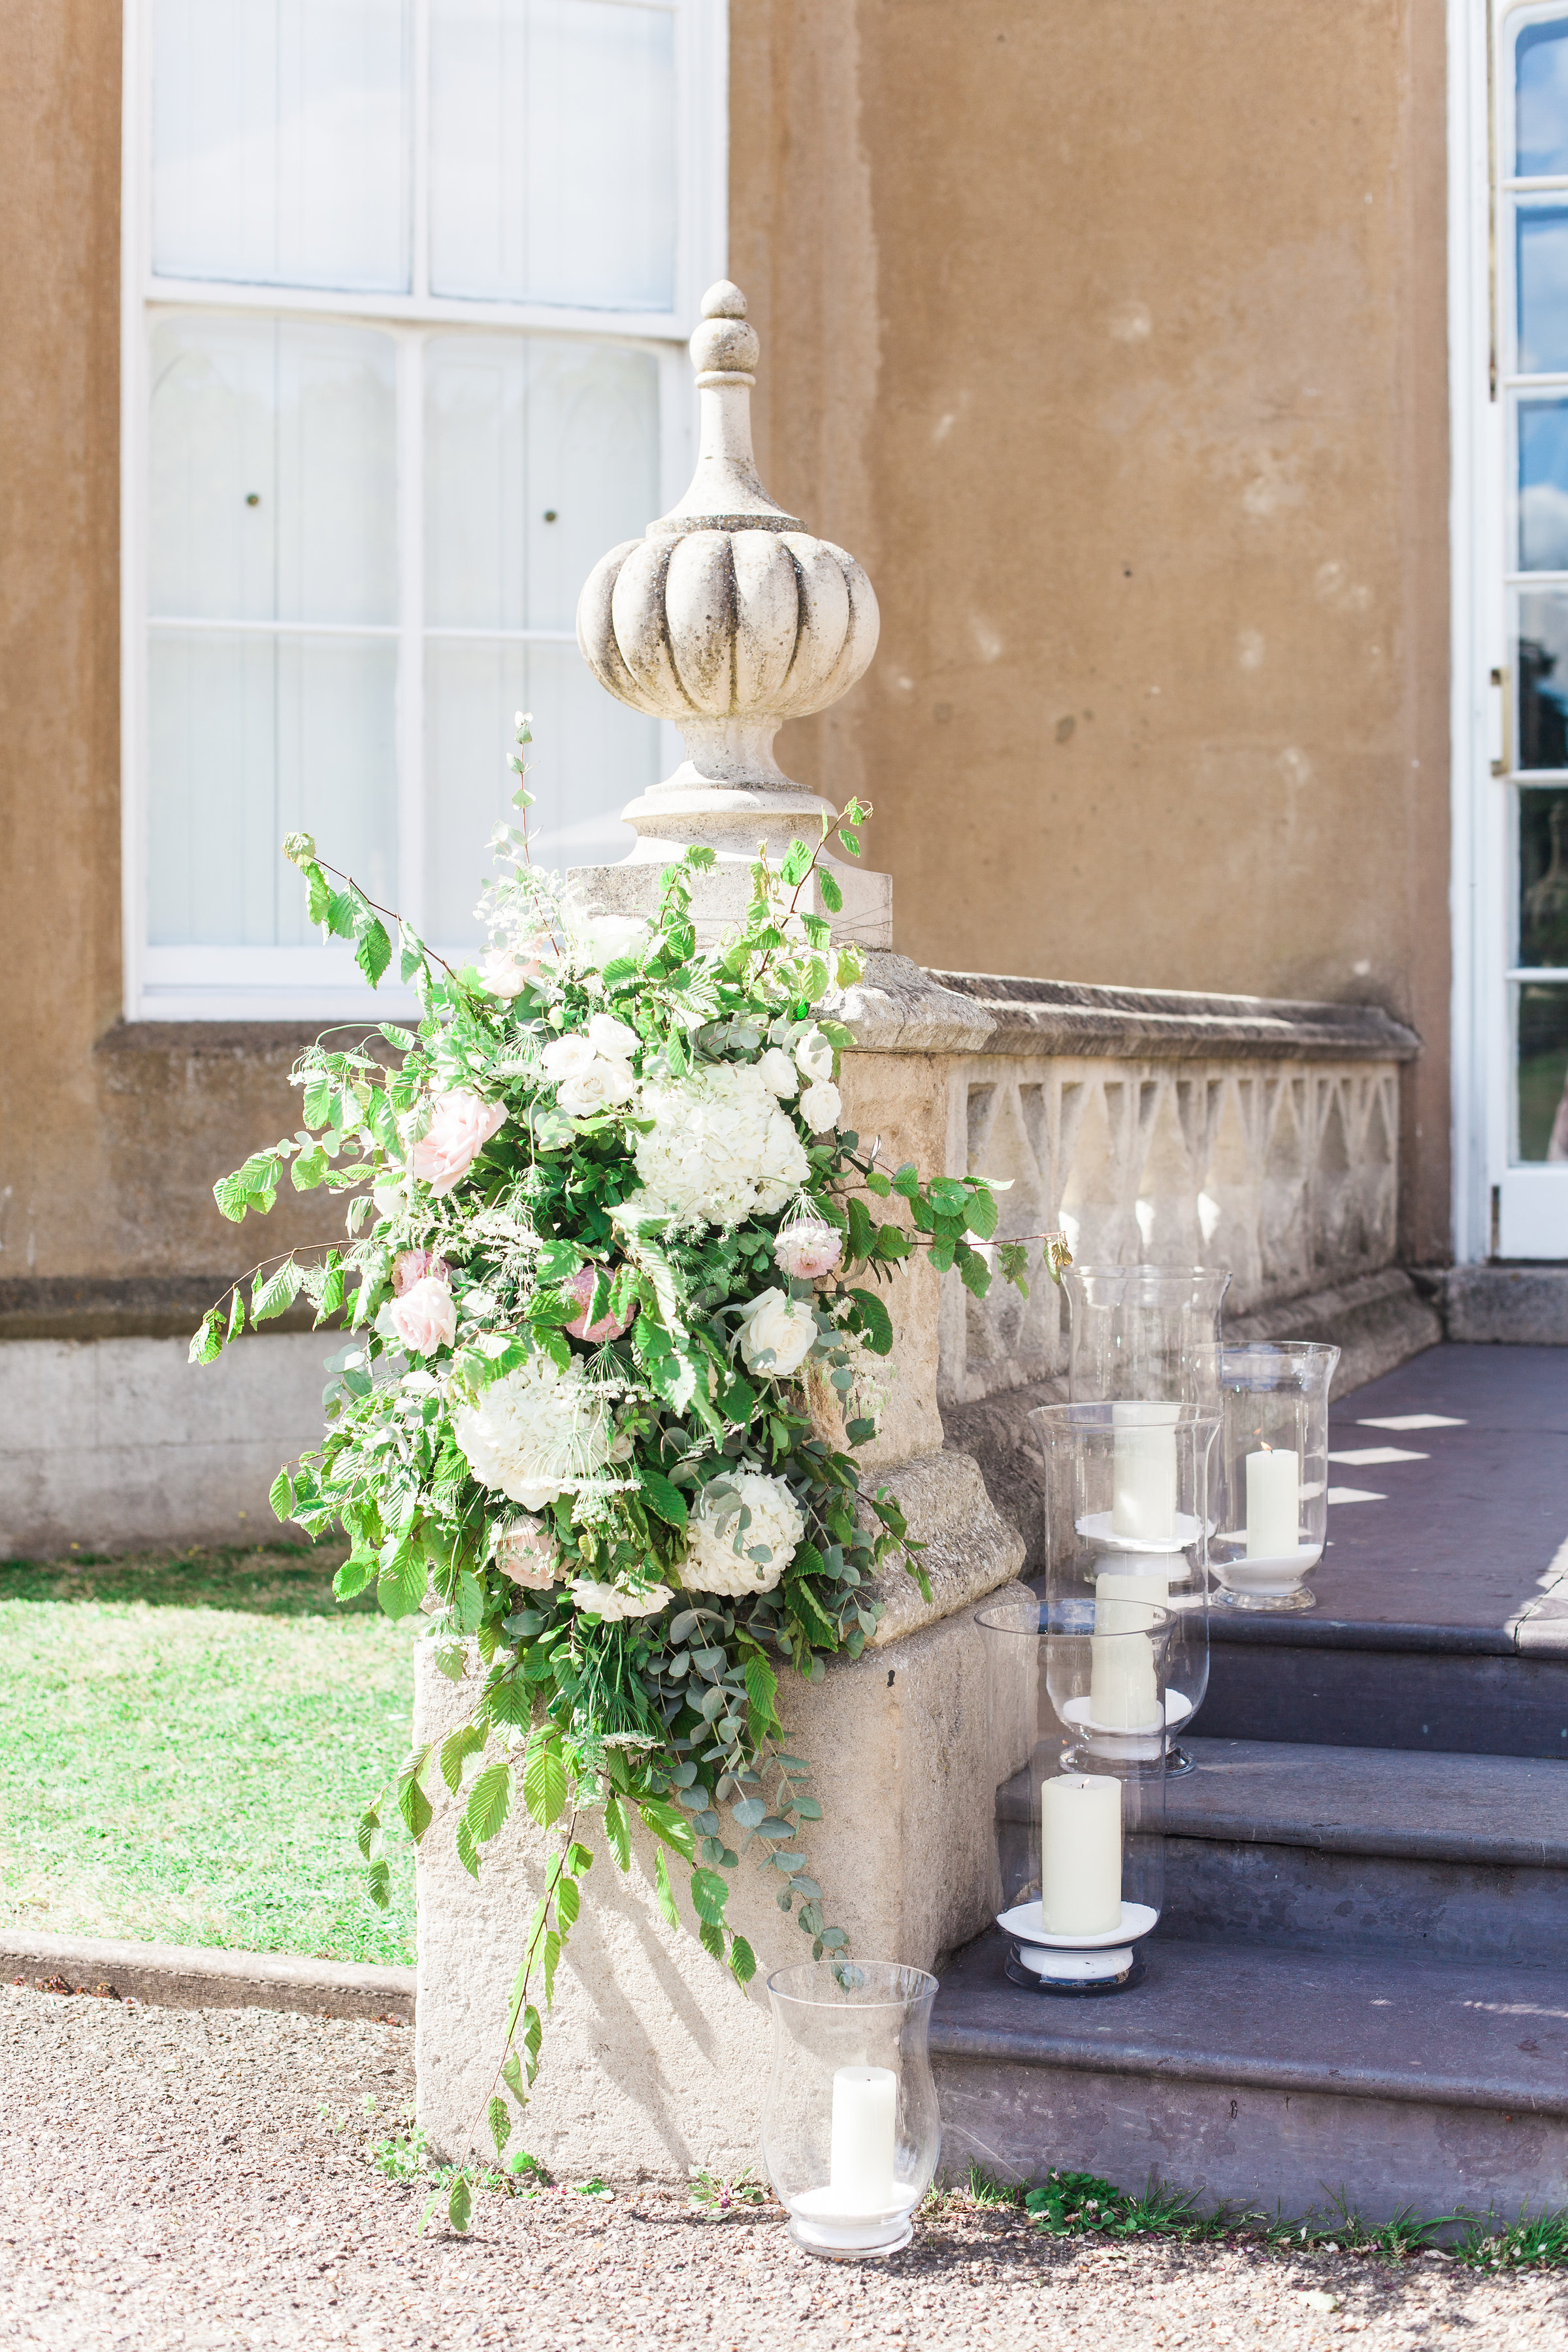 NONSUCH MANSION REVELRY EVENTS